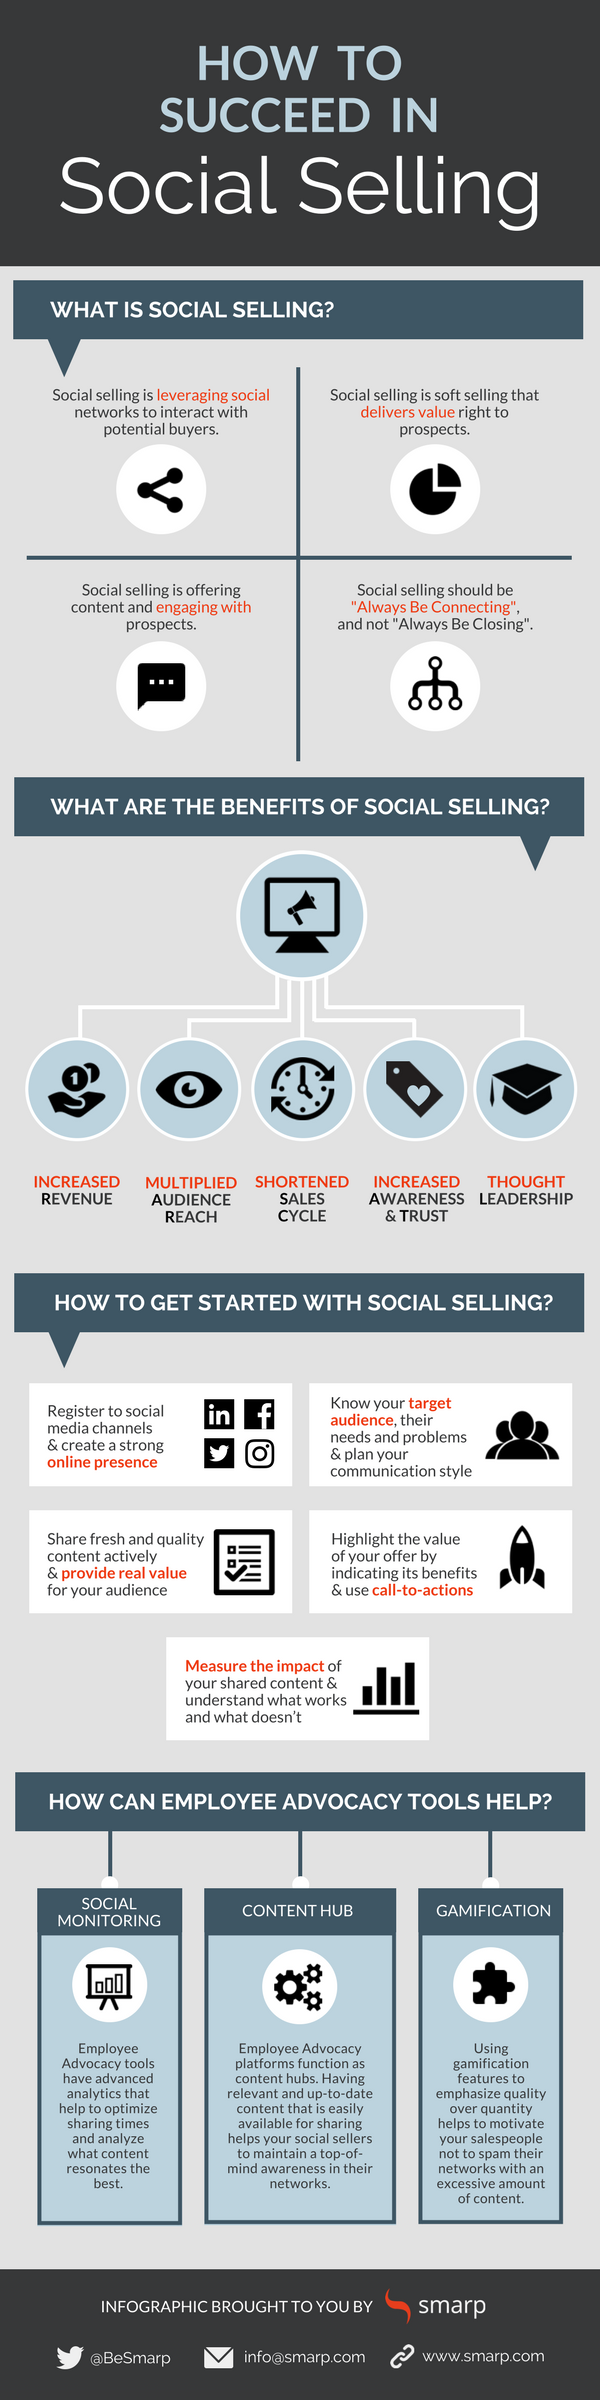 How to succeed in social selling infographic